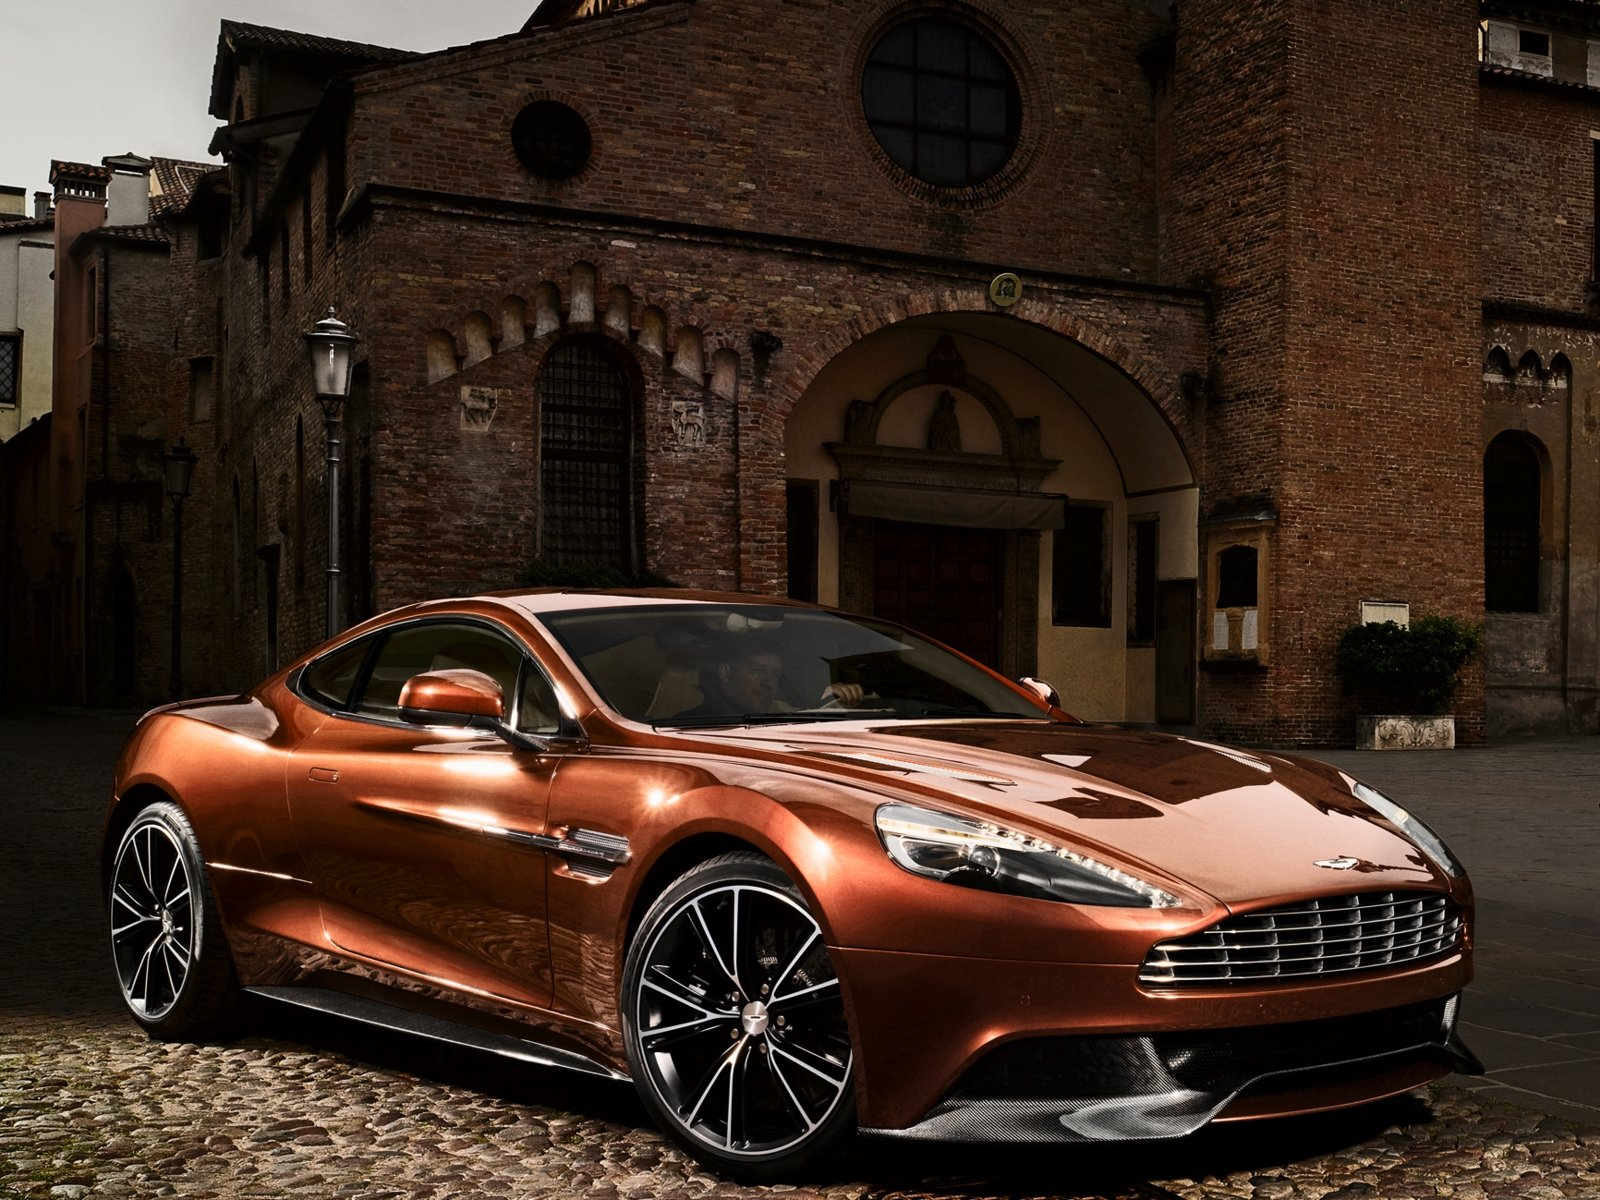 Aston Martin Vanquish Wallpaper Photos 8080 Wallpaper Wallpaper 1600x1200